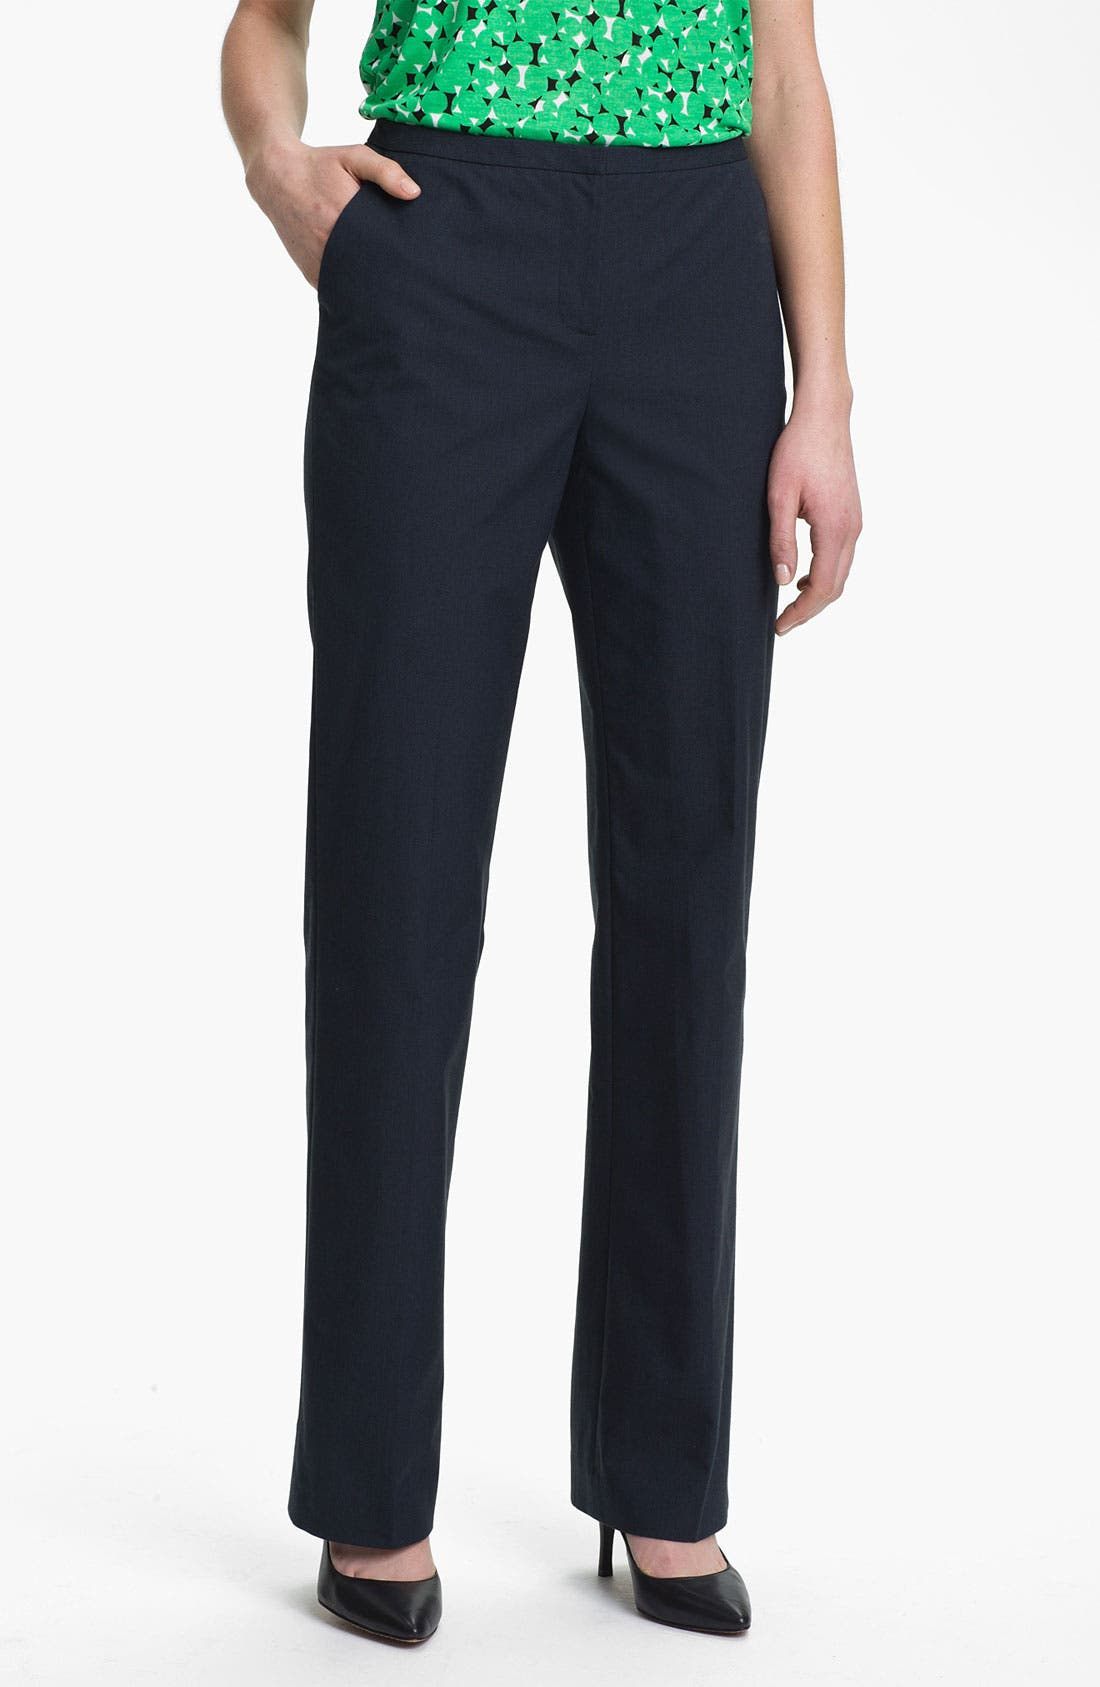 Alternate Image 1 Selected - Halogen 'Taylor' Pinstripe Curvy Fit Pants